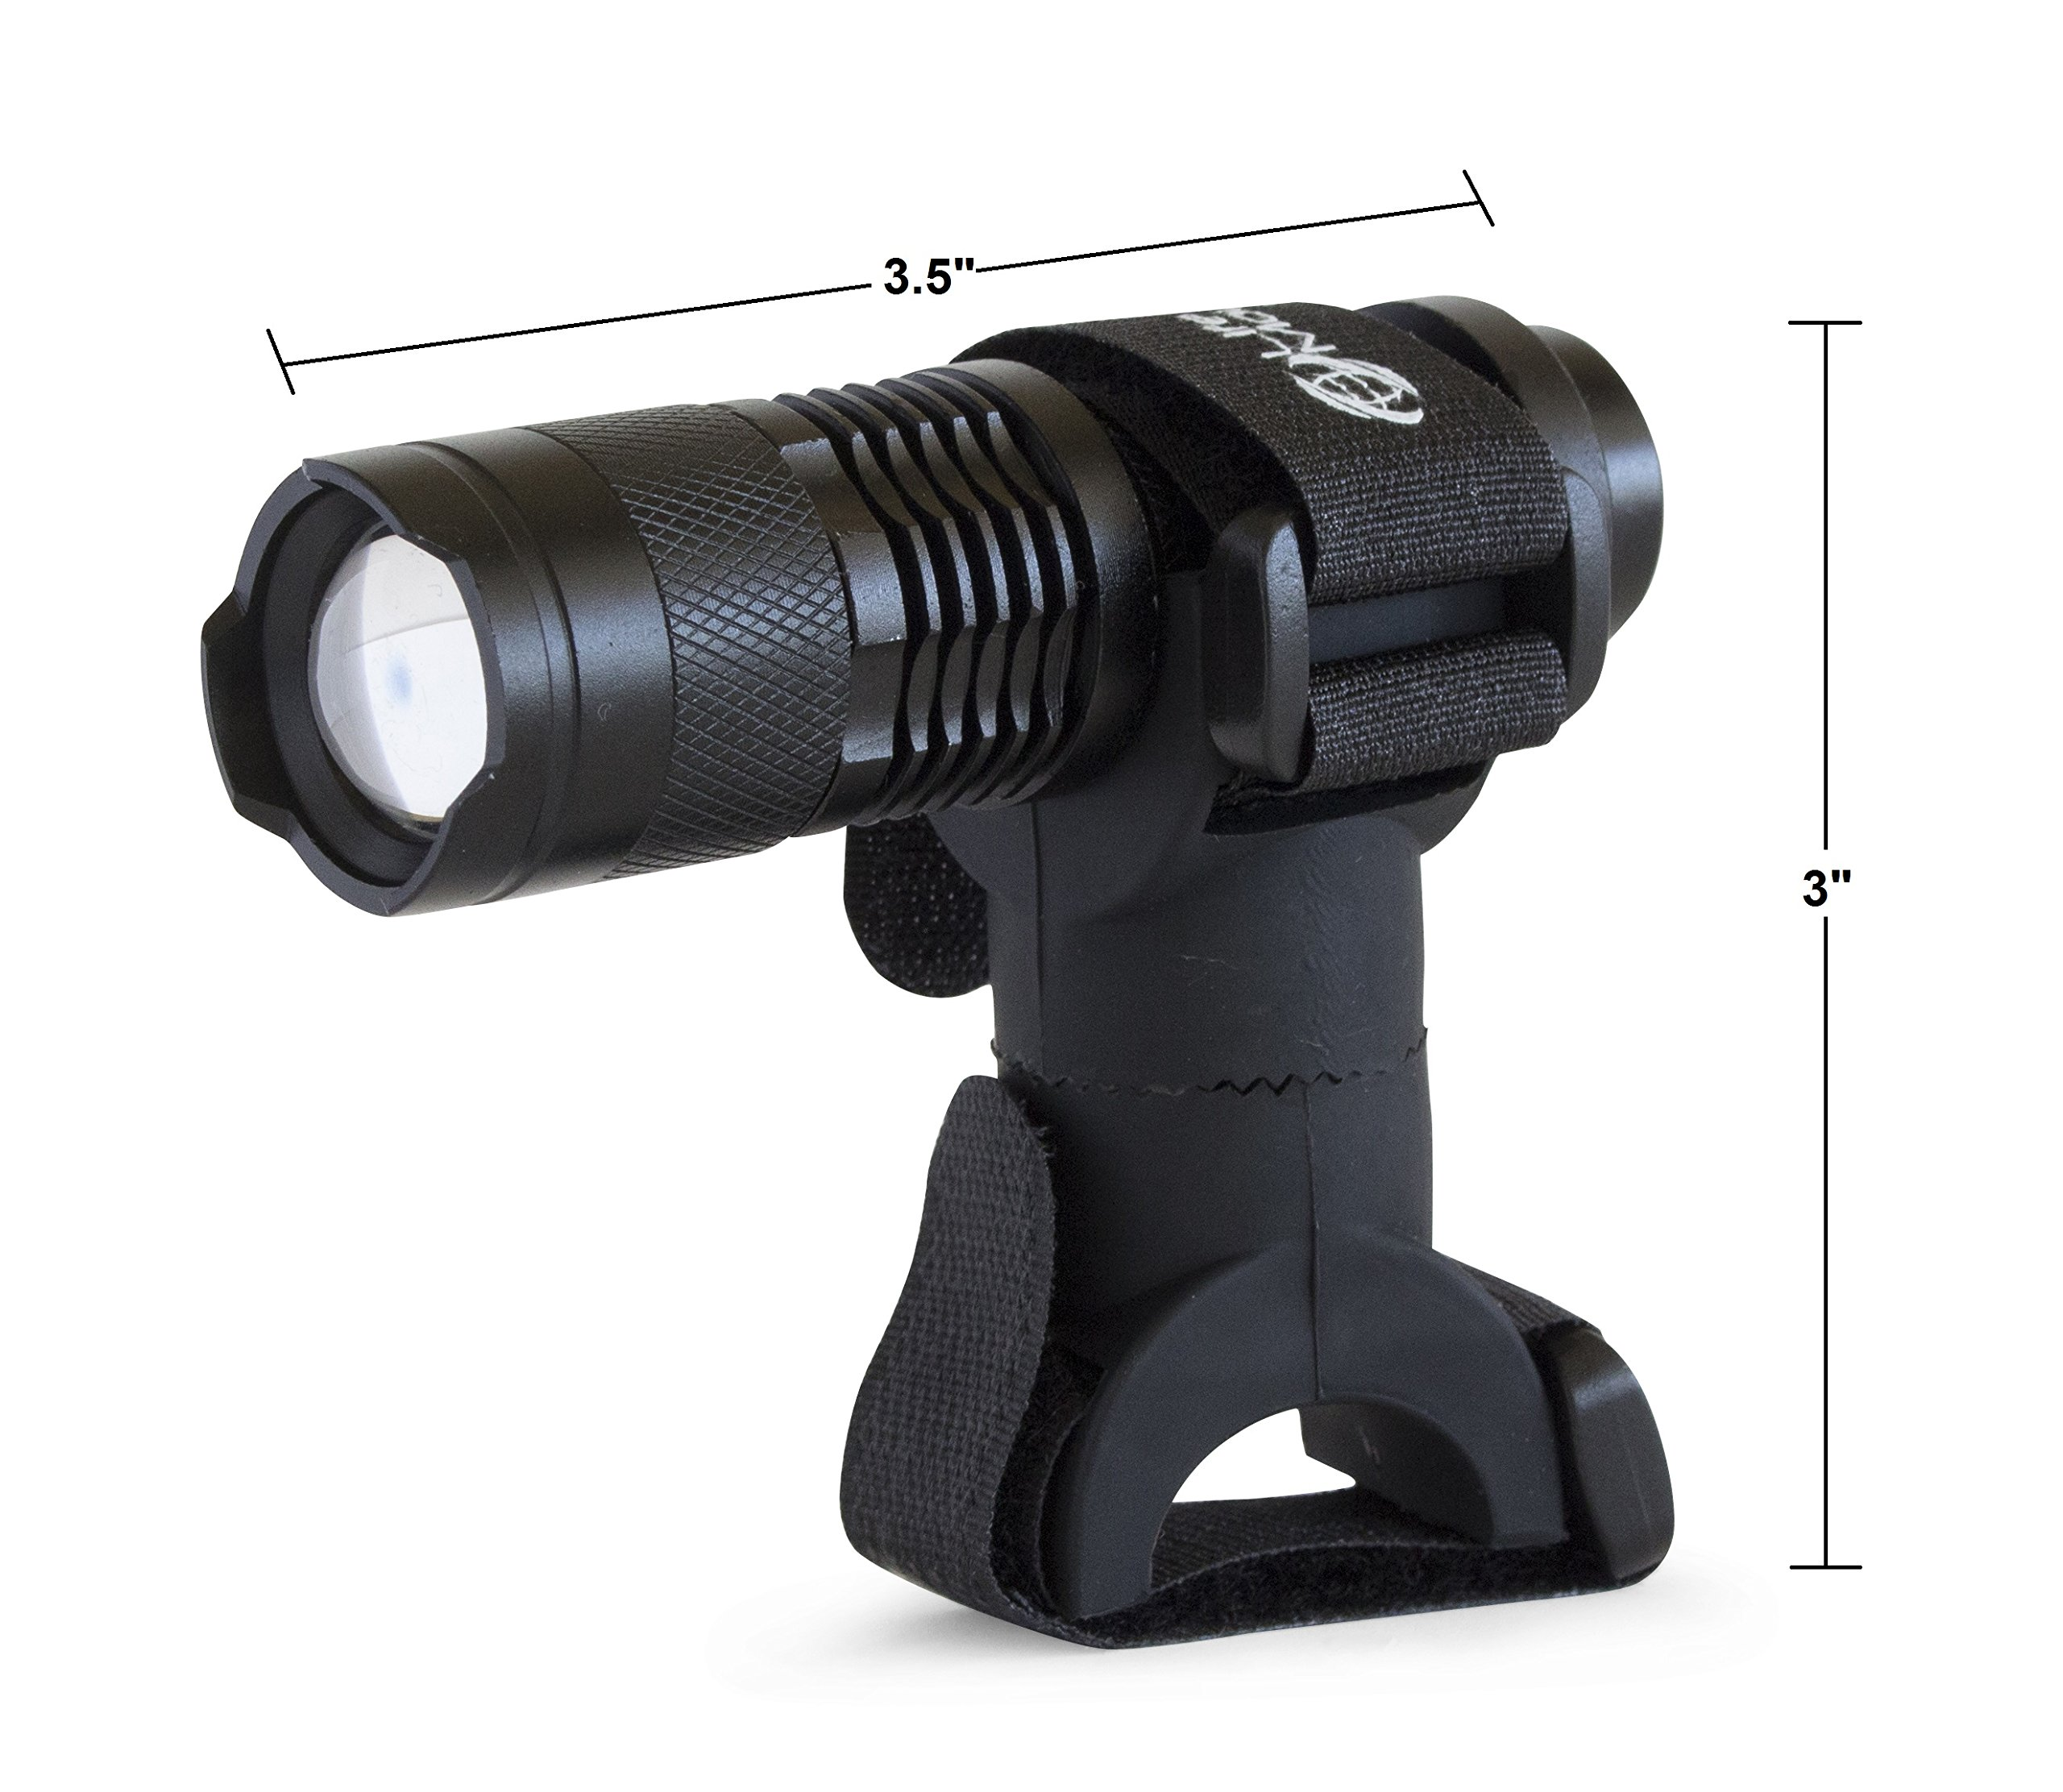 Life Mounts All Weather LED Barbecue Grill Light with Patented Universal Flex Mount (Black) by Life Mounts (Image #5)